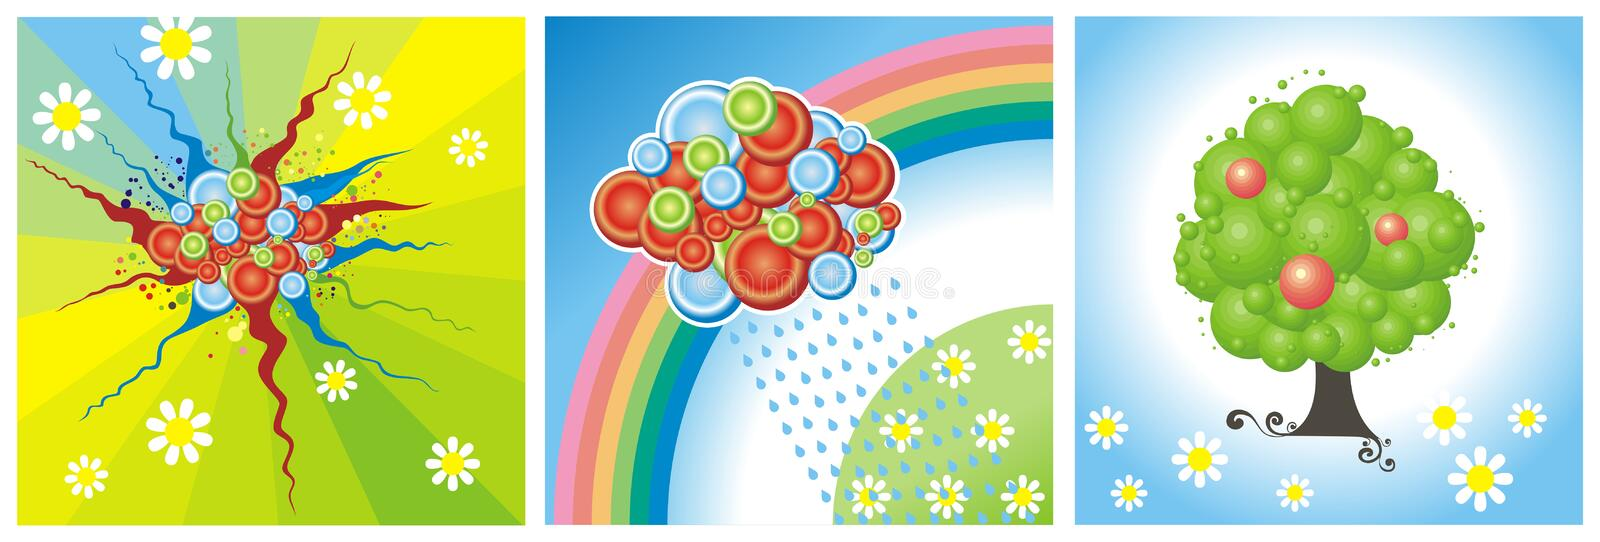 Download Summer weather stock vector. Illustration of tree, square - 4989660